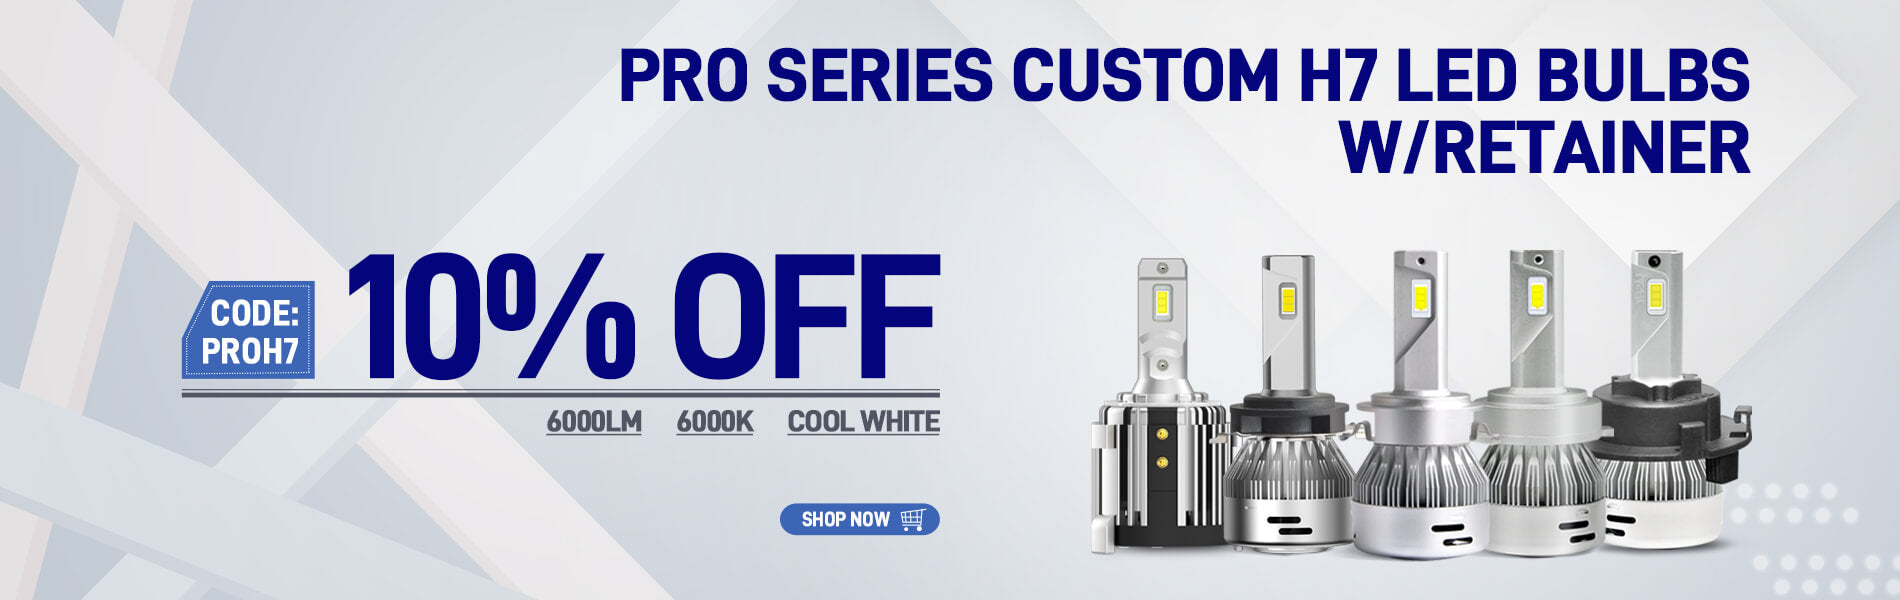 Lasfit Pro Series Custom H7 LED Bulbs Limited Time Offer